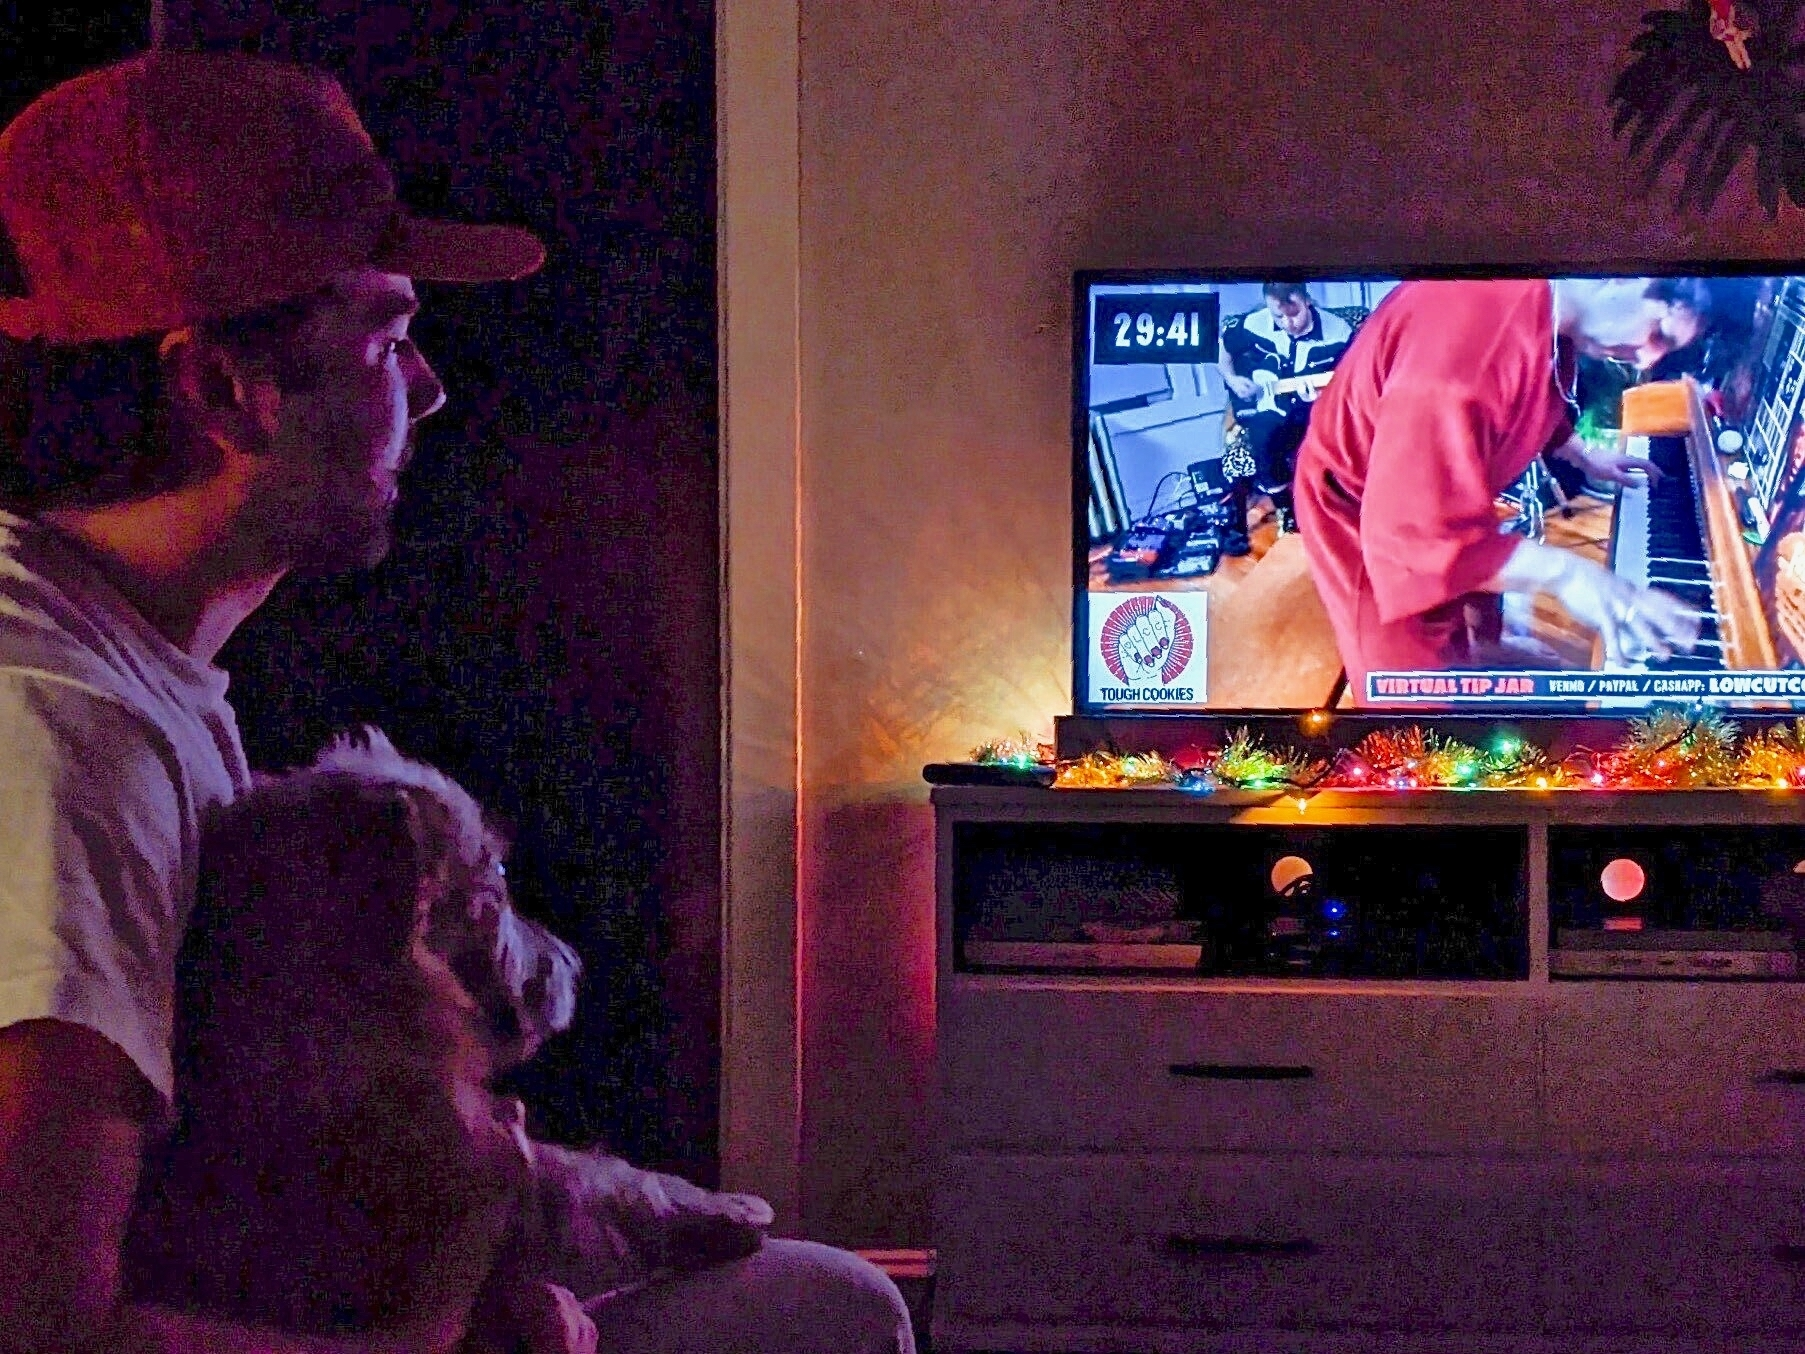 Mike Kaiser and his dog, Rooney, watching a Low Cut Connie livestream concert New Year's Eve.